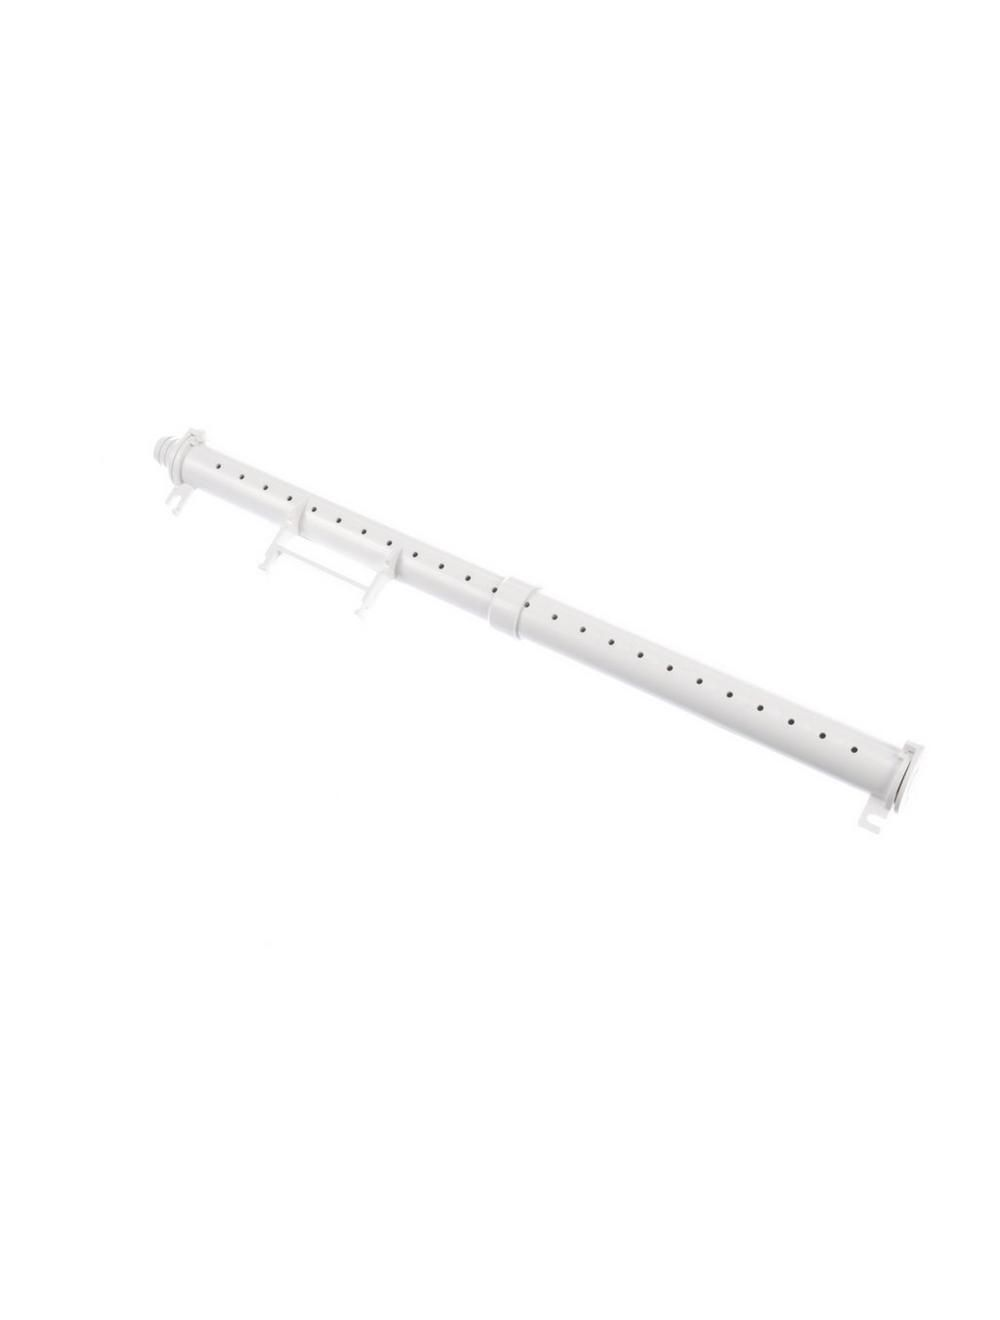 MANITOWOC ICE 7624983 Water Distribution Tube Assembly by Manitowoc Ice